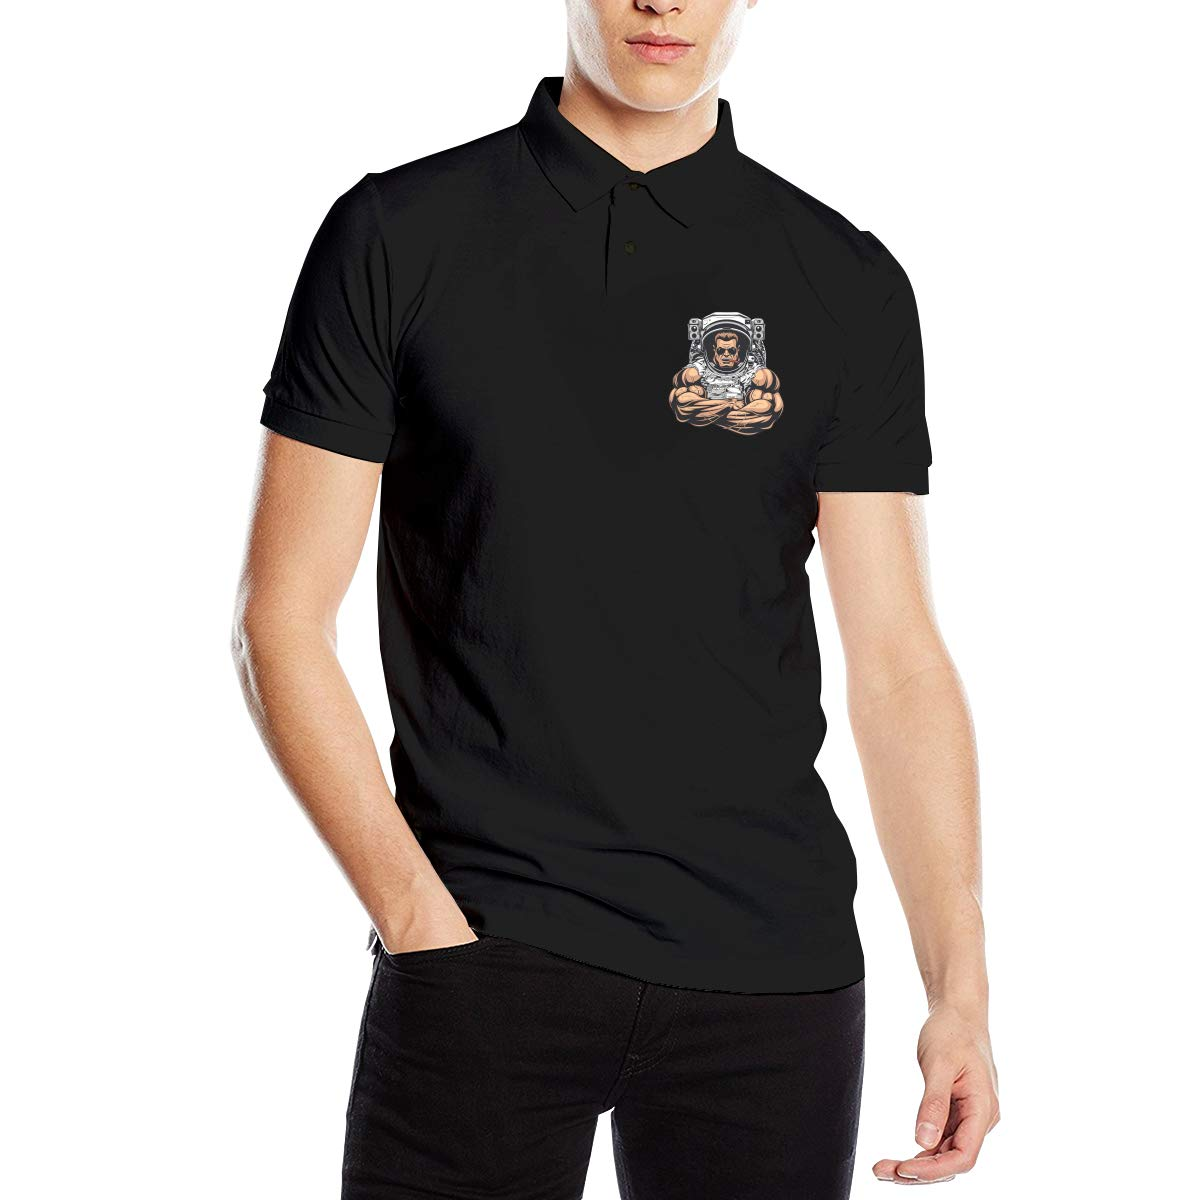 Cheshidaqiche Mens Customized Comfortable A Bodybuilder in an Astronaut Suit Short Sleeve New Polo Shirts Black